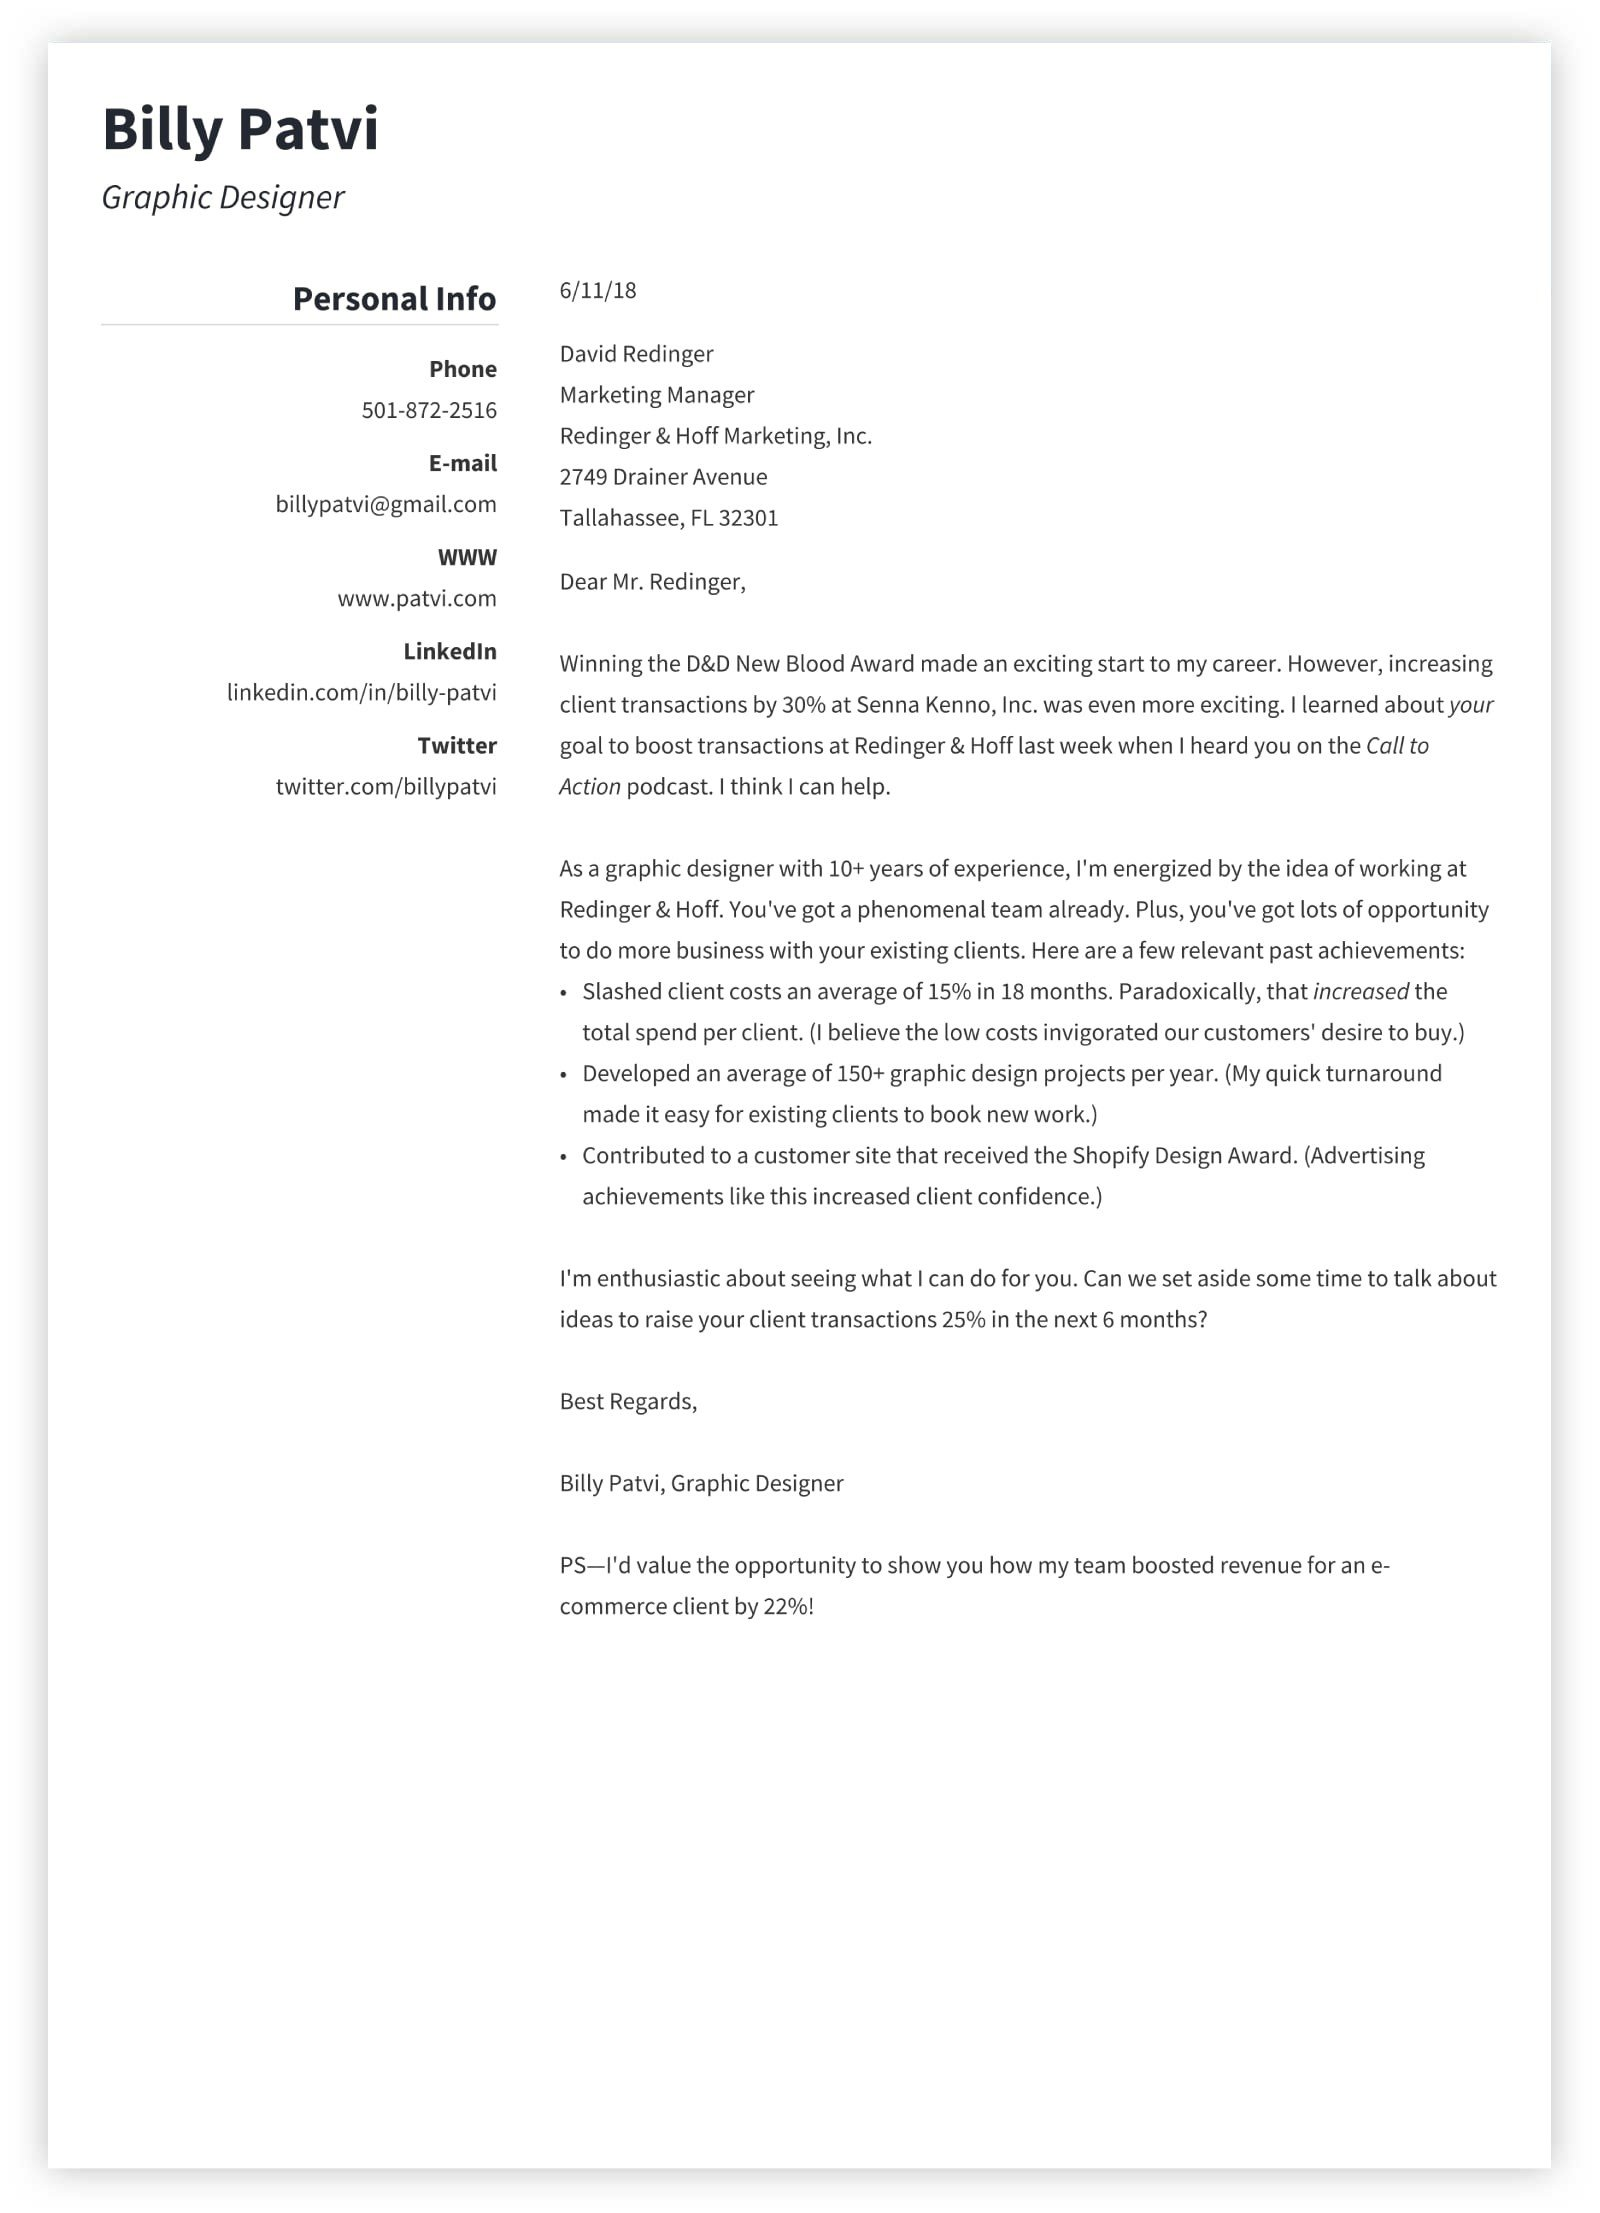 Simple Resume Cover Letter Examples | How To Write A Cover Letter In 8 Simple Steps 12 Examples